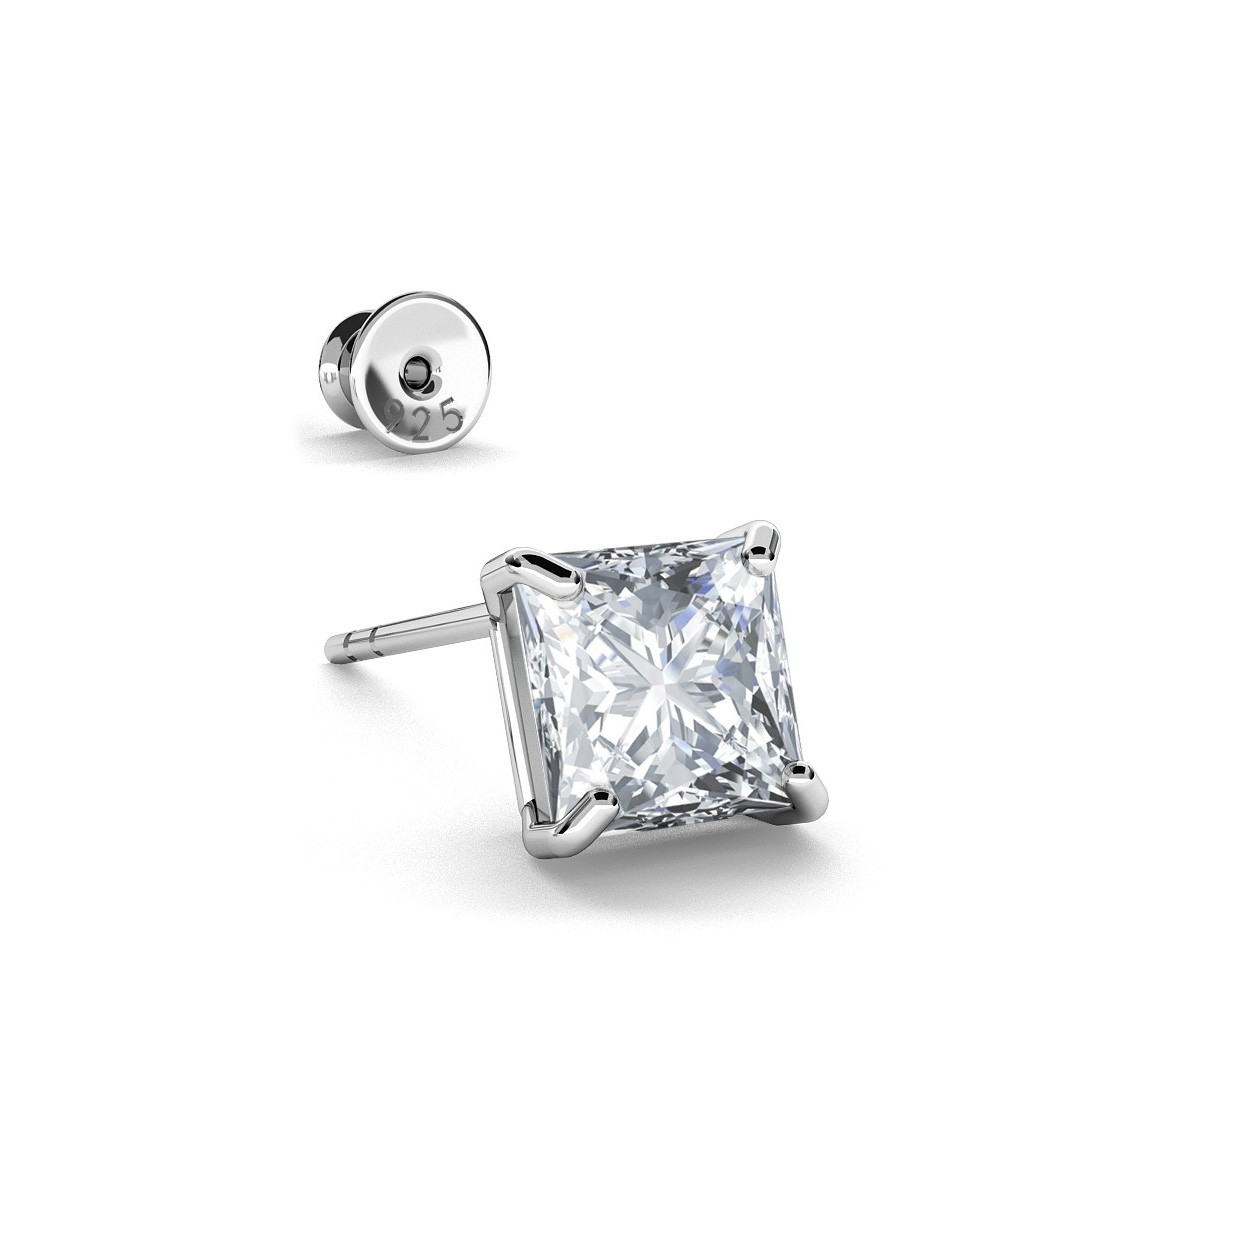 Earrings swarovski zirconia 6x6 mm